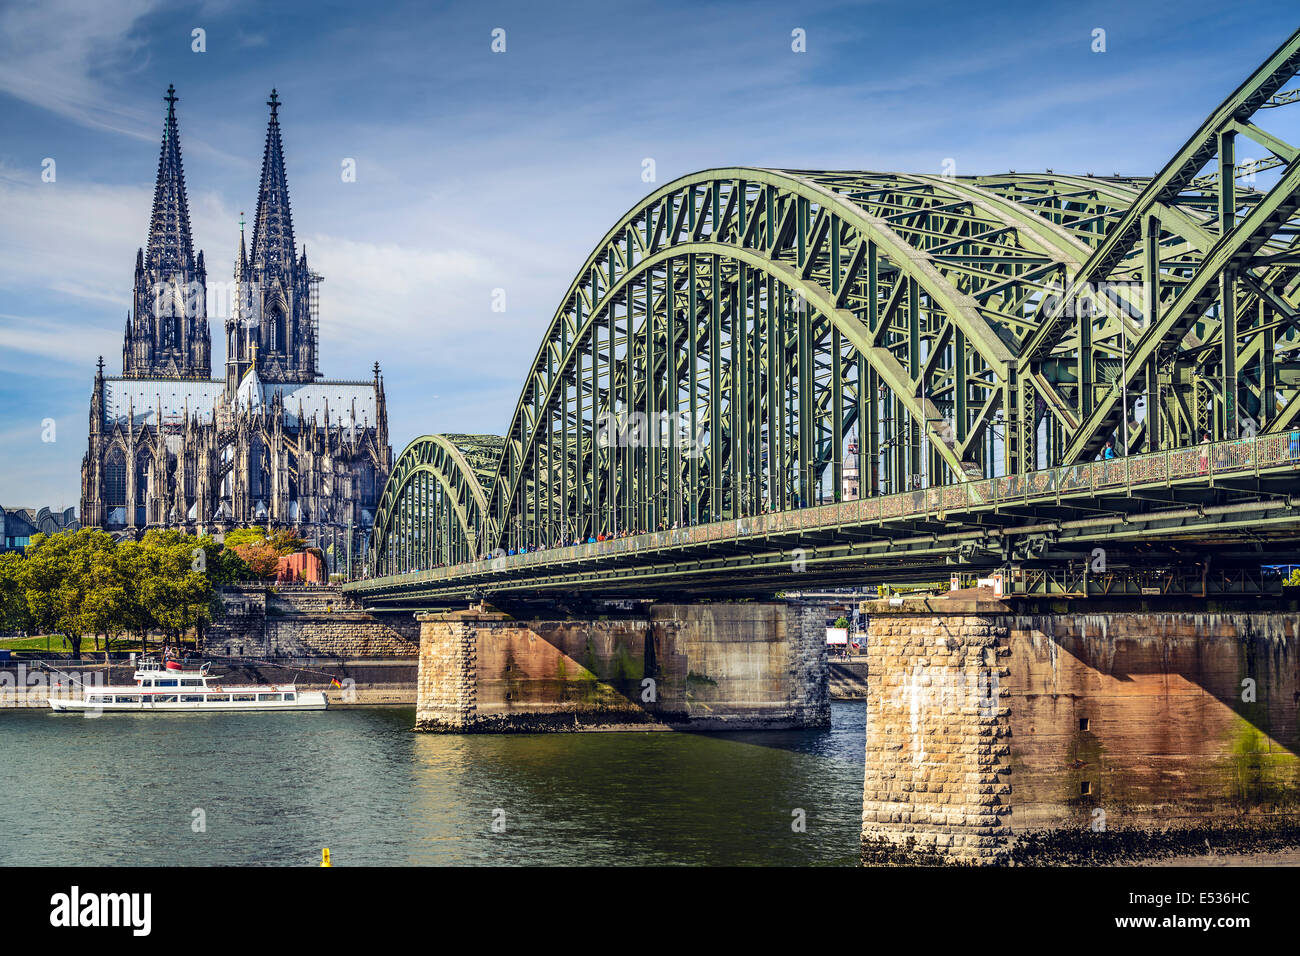 Cologne, Germany over the Rhine River. Stock Photo